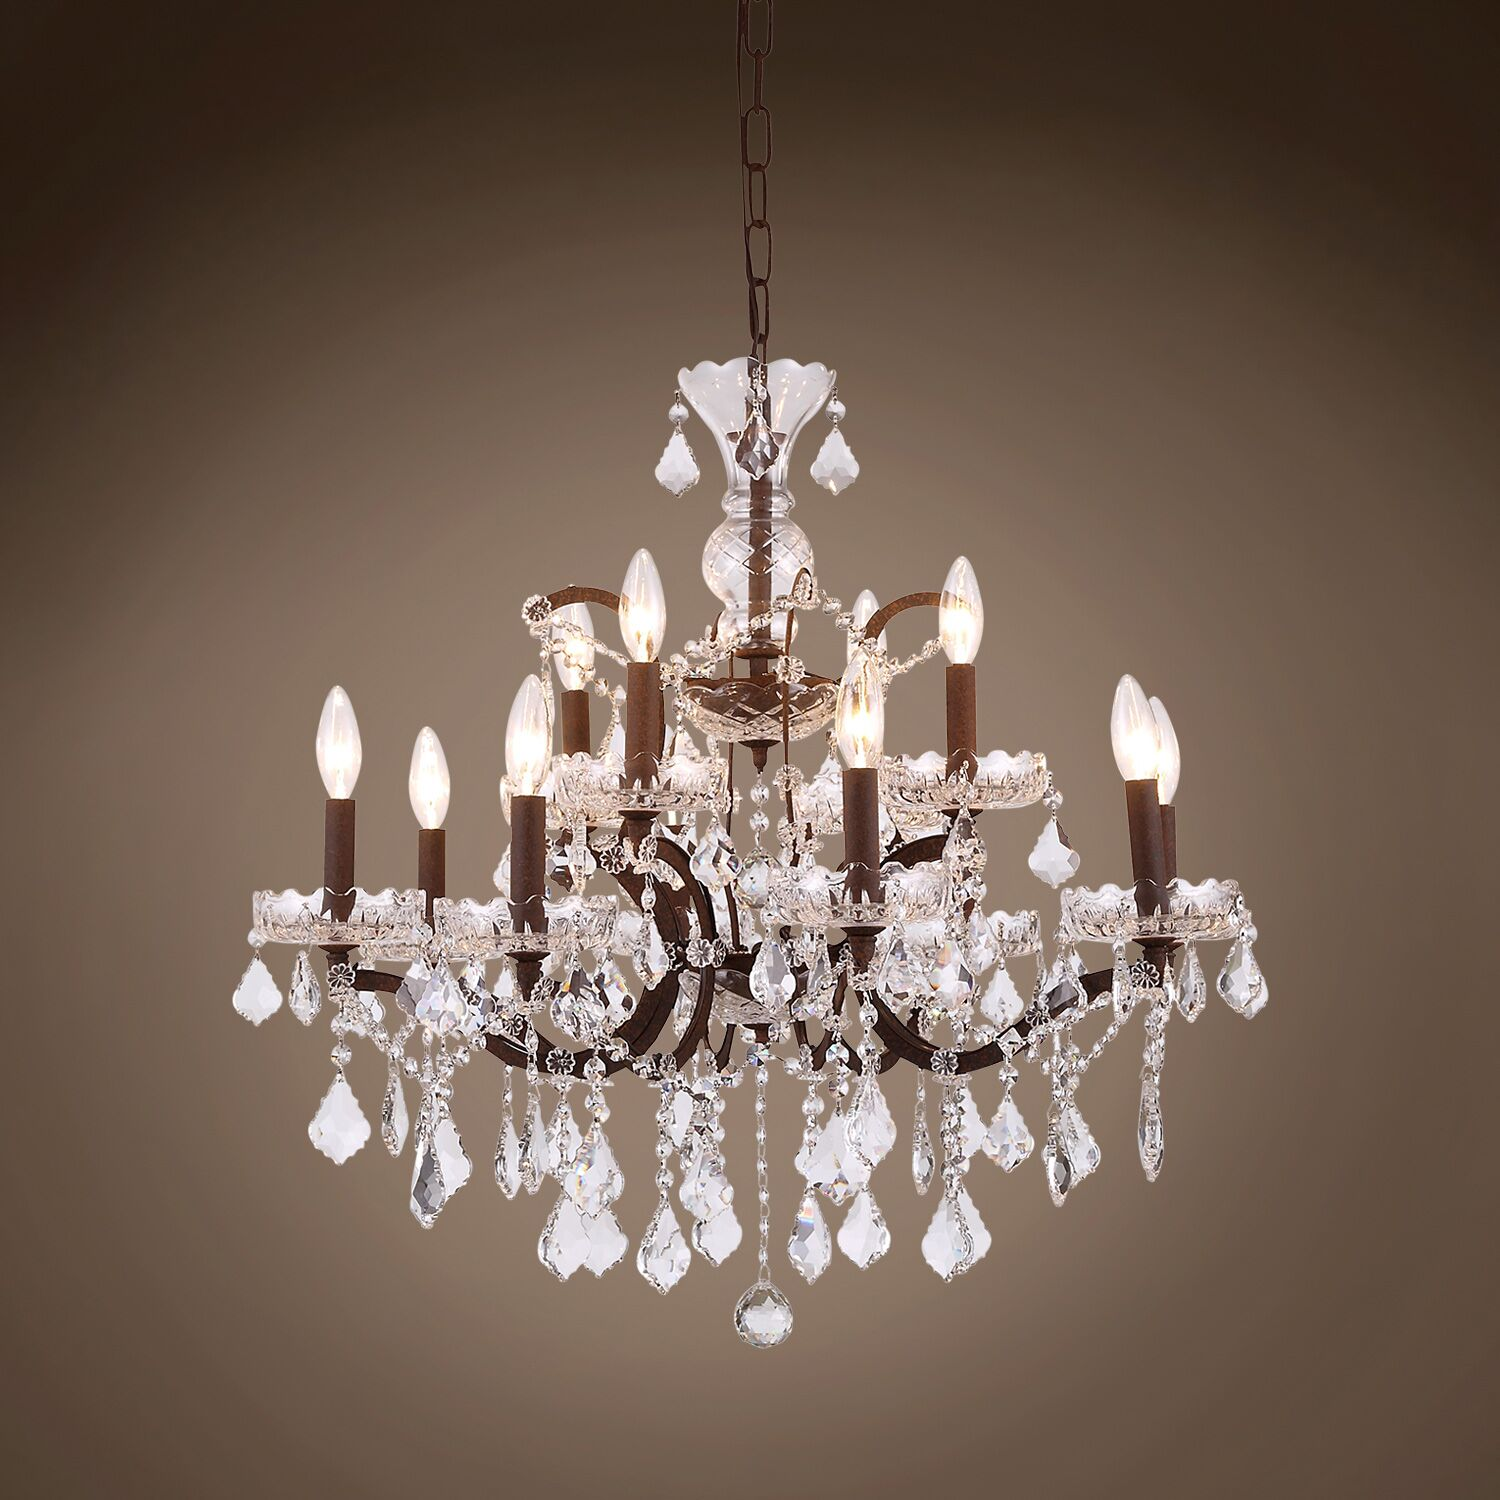 Chantrell 12-Light Chandelier Crystal Color: Clear, Finish: Rustic Iron